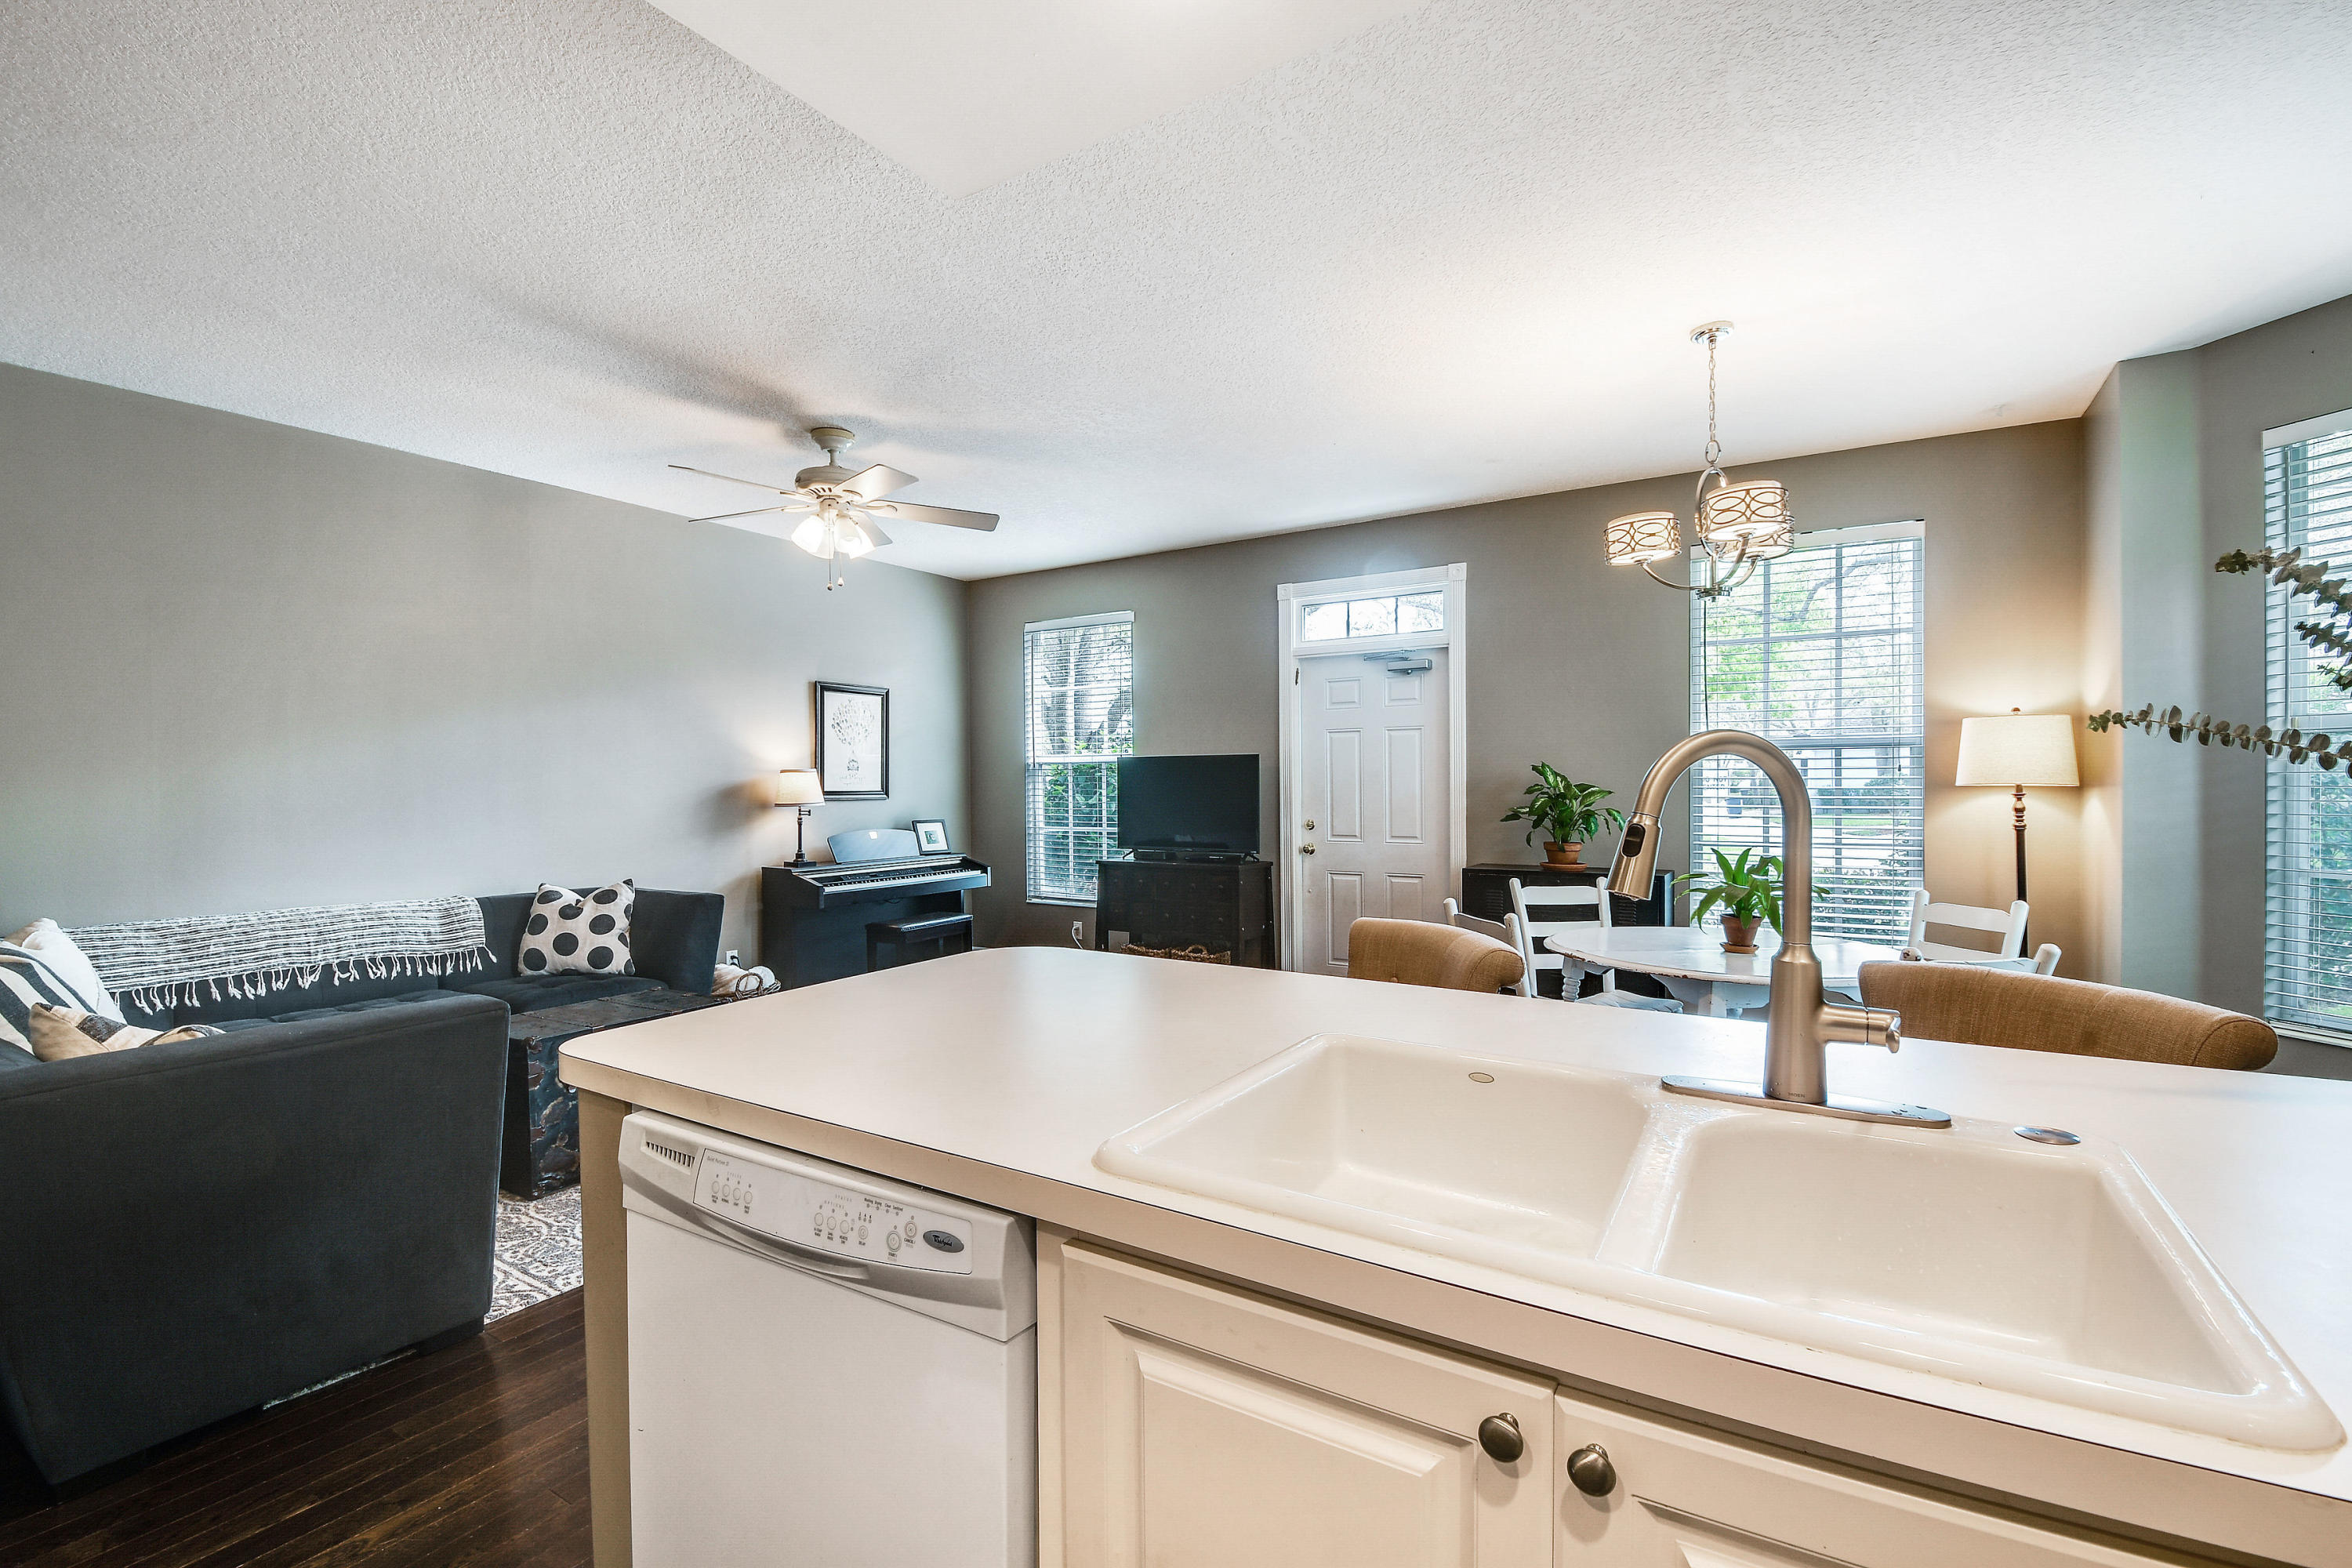 146 Day Lily Drive  - Abacoa Homes - photo 14